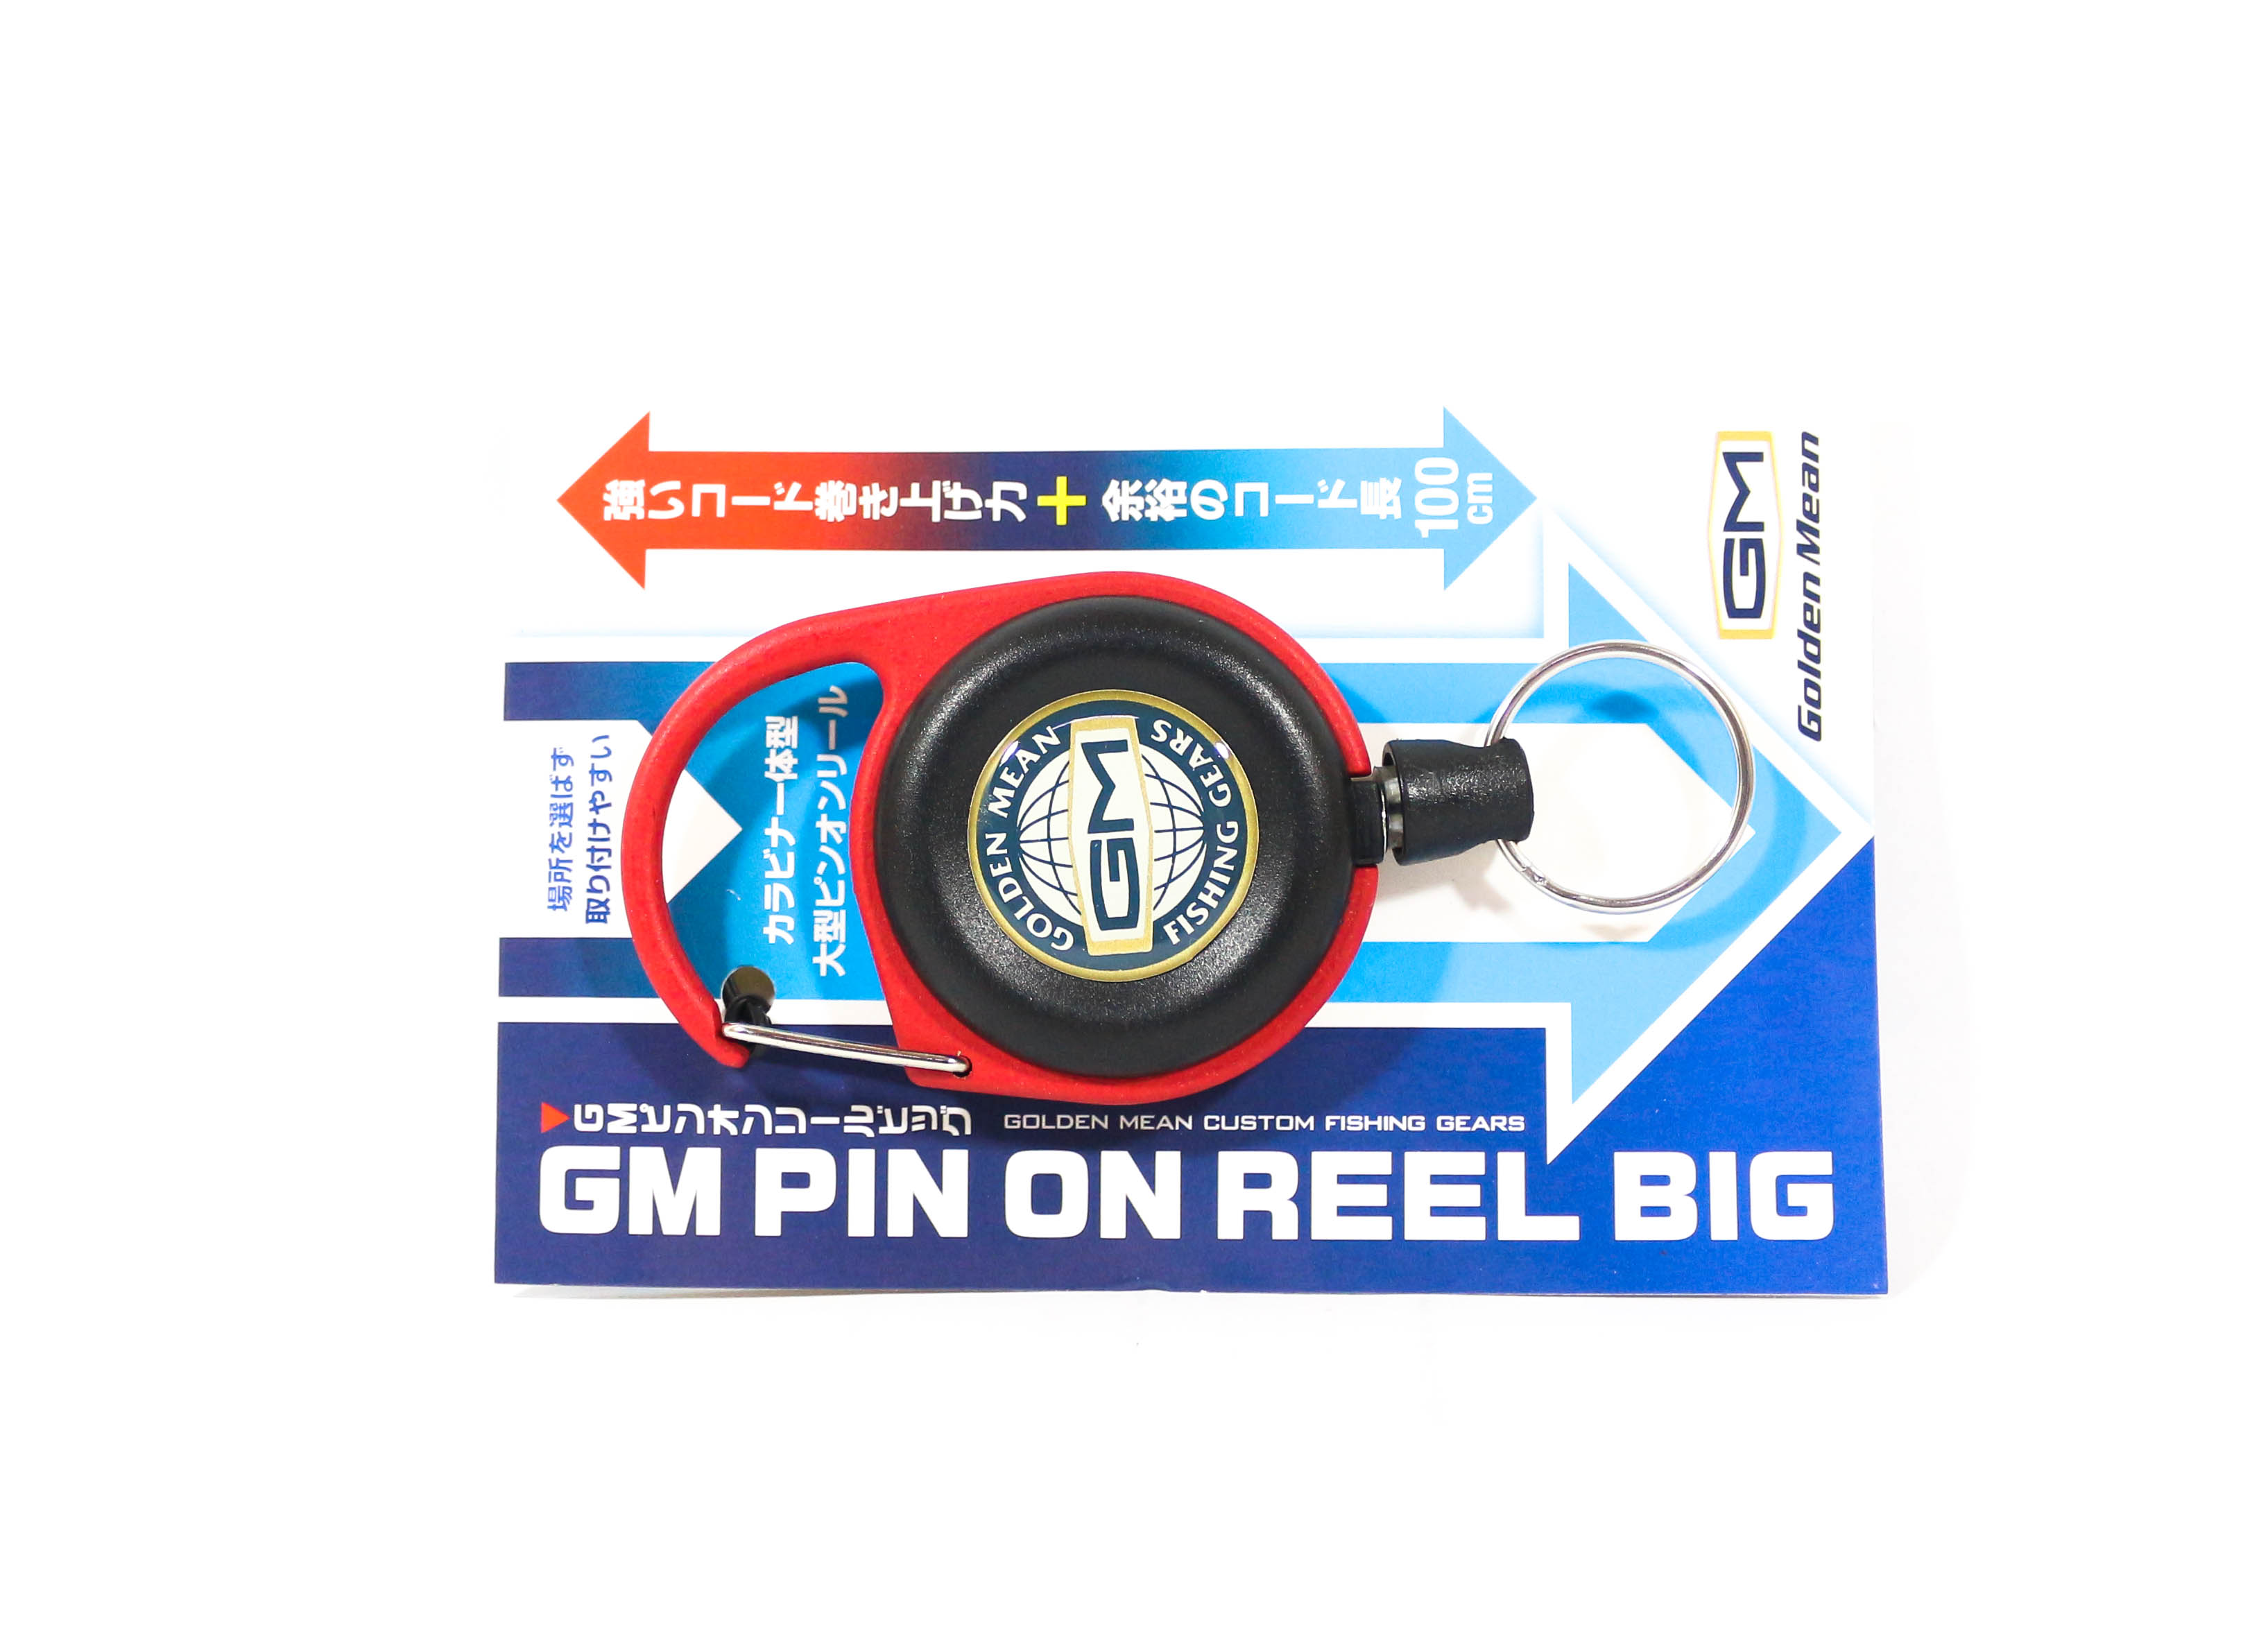 Golden Mean GM Pin on Reel Big Carabina 100cm Red (6174)